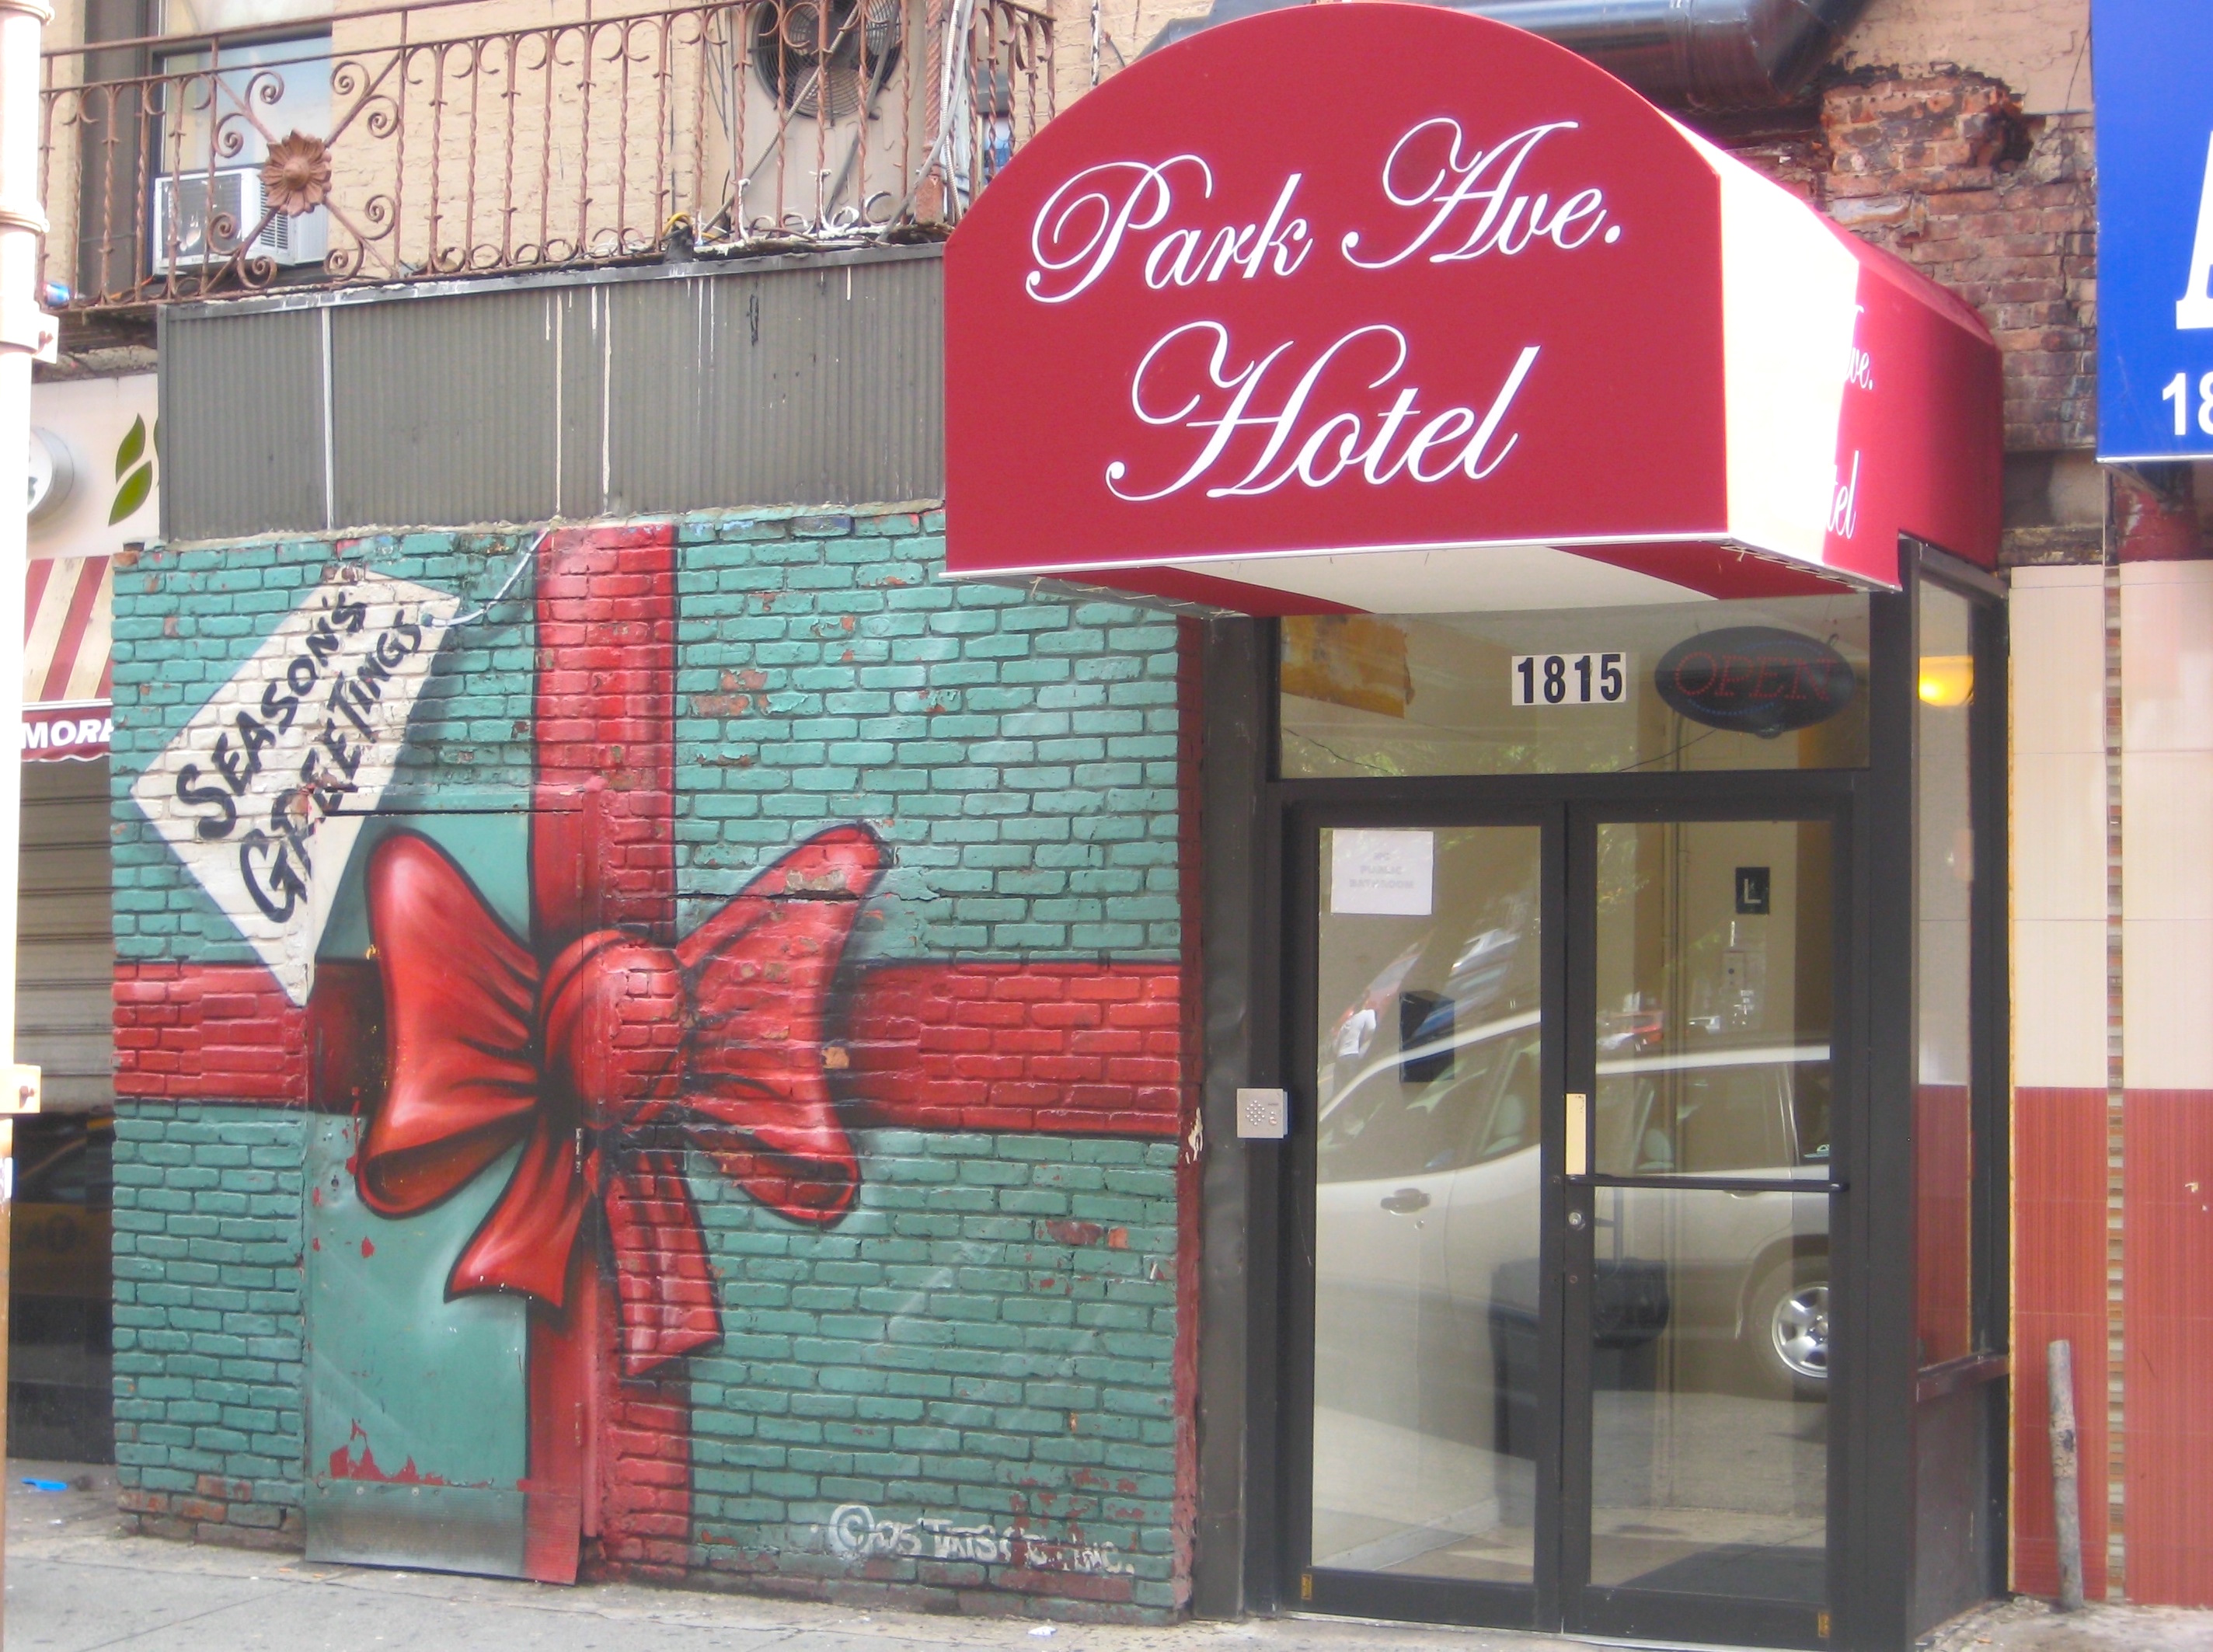 A Harlem Hotels Holiday Gift For New York City Ephemeral New York